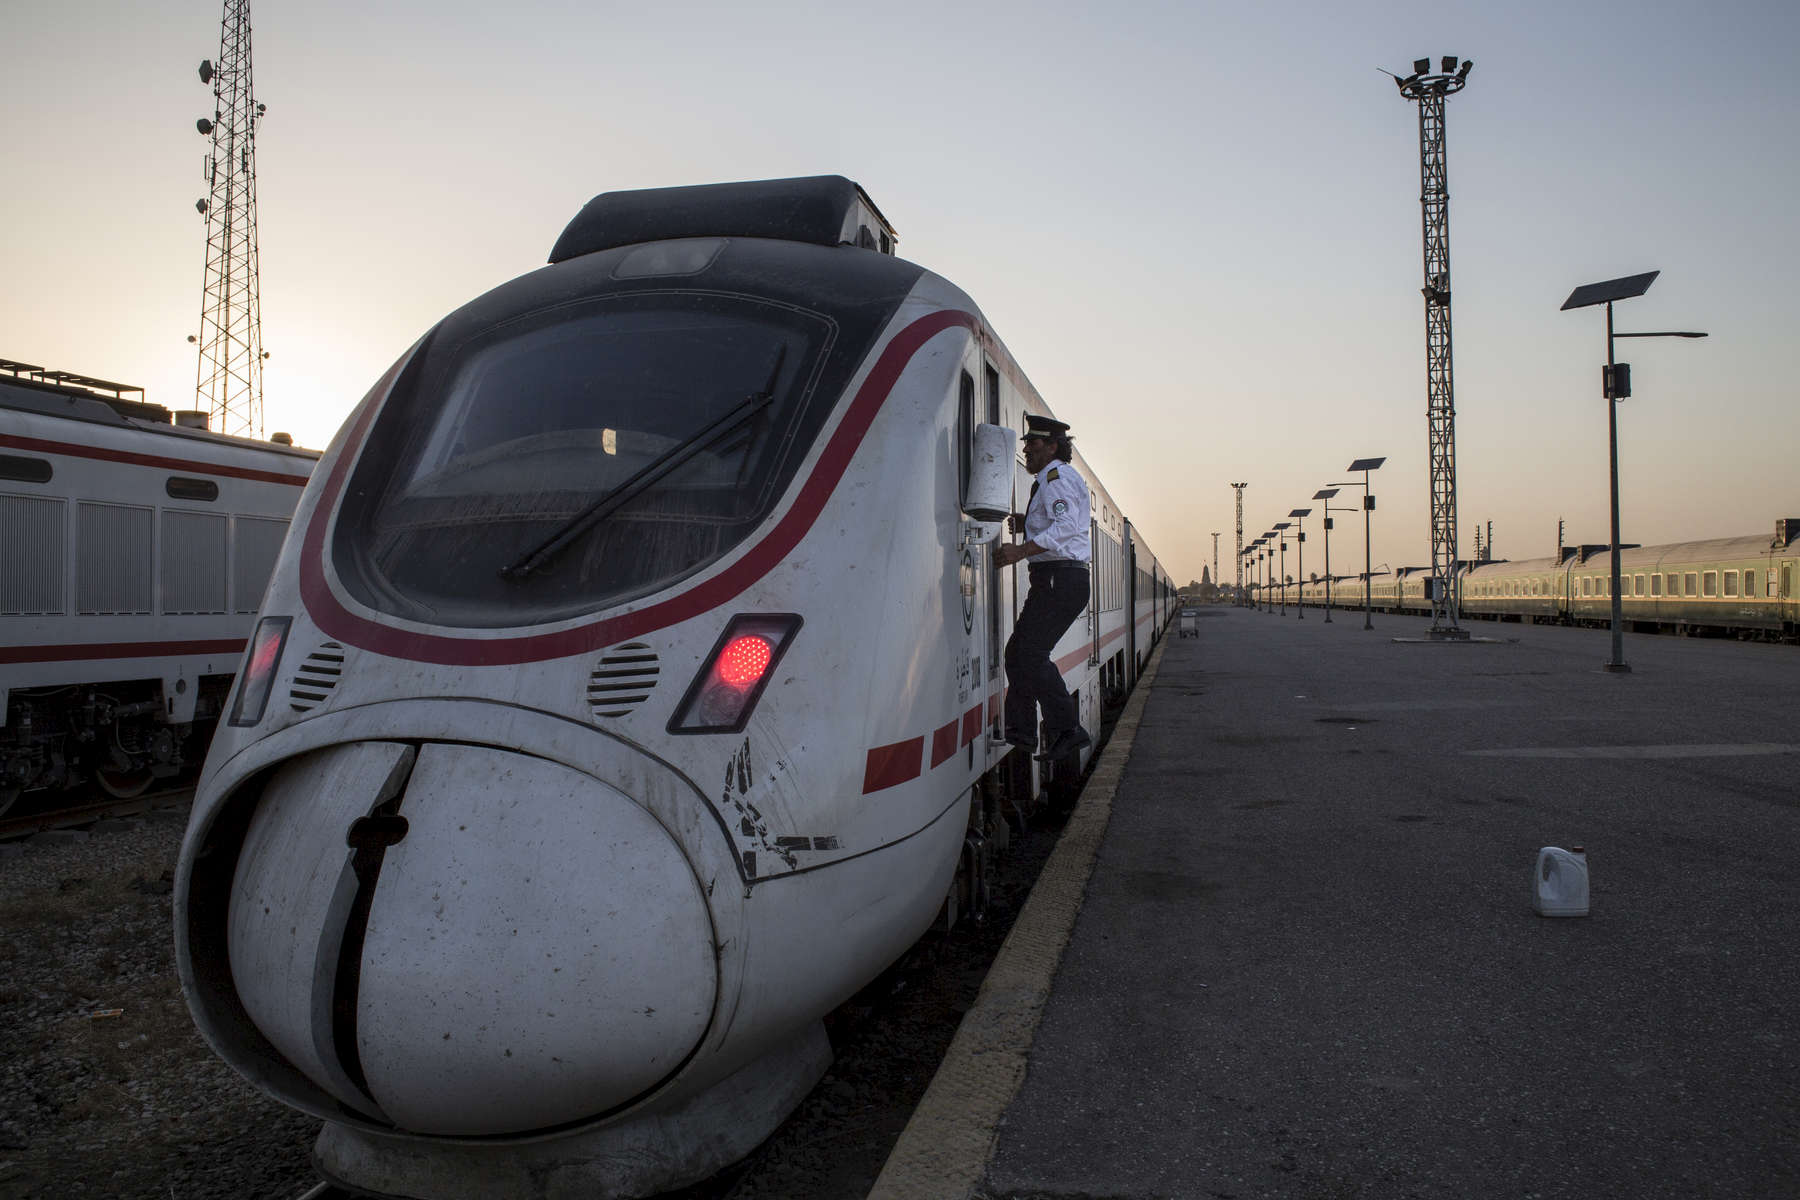 11/08/2016 -- Baghdad, Iraq -- At sunset, Ali Al-Karkhi boards the train for a final inspection before it embarks on the 10 hour journey to Basra from Baghdad.